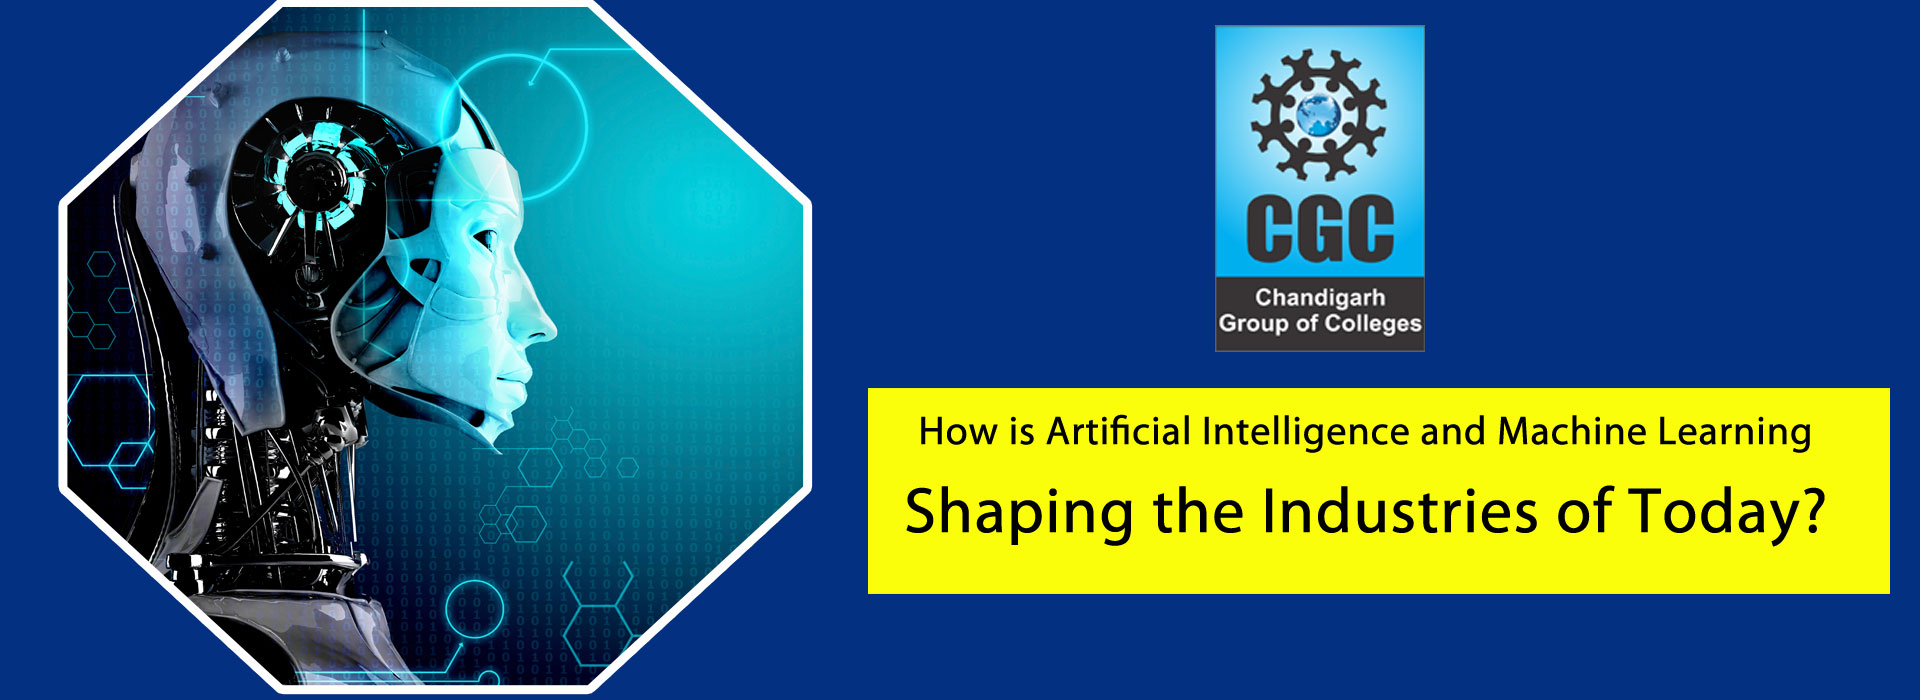 How is Artificial Intelligence and Machine Learning Shaping the Industries of Today?